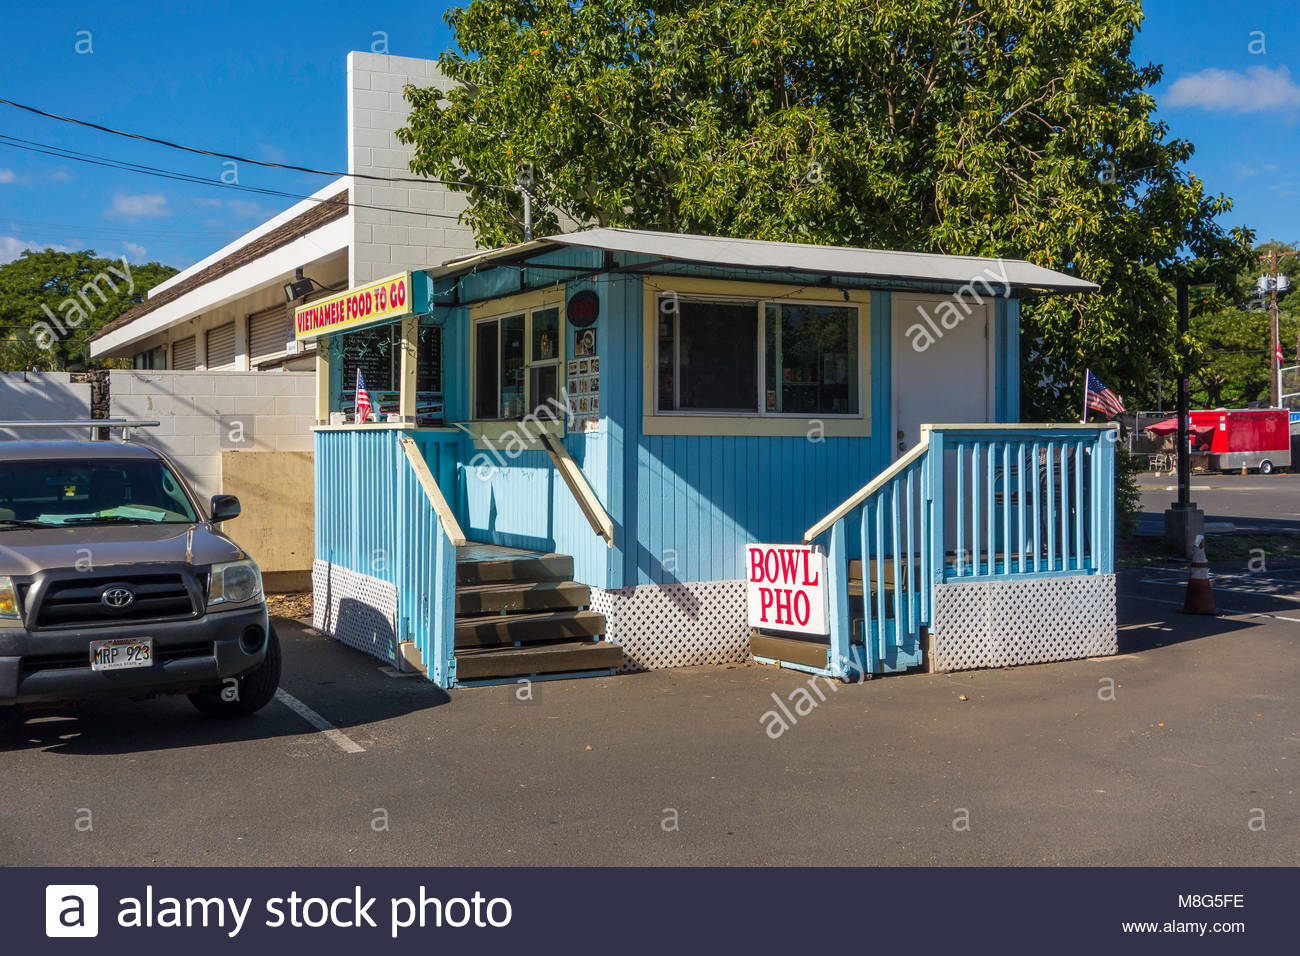 Vietnamese restaurant with food to go in Kihei on island of Maui in the state of Hawaii USA - Stock Image